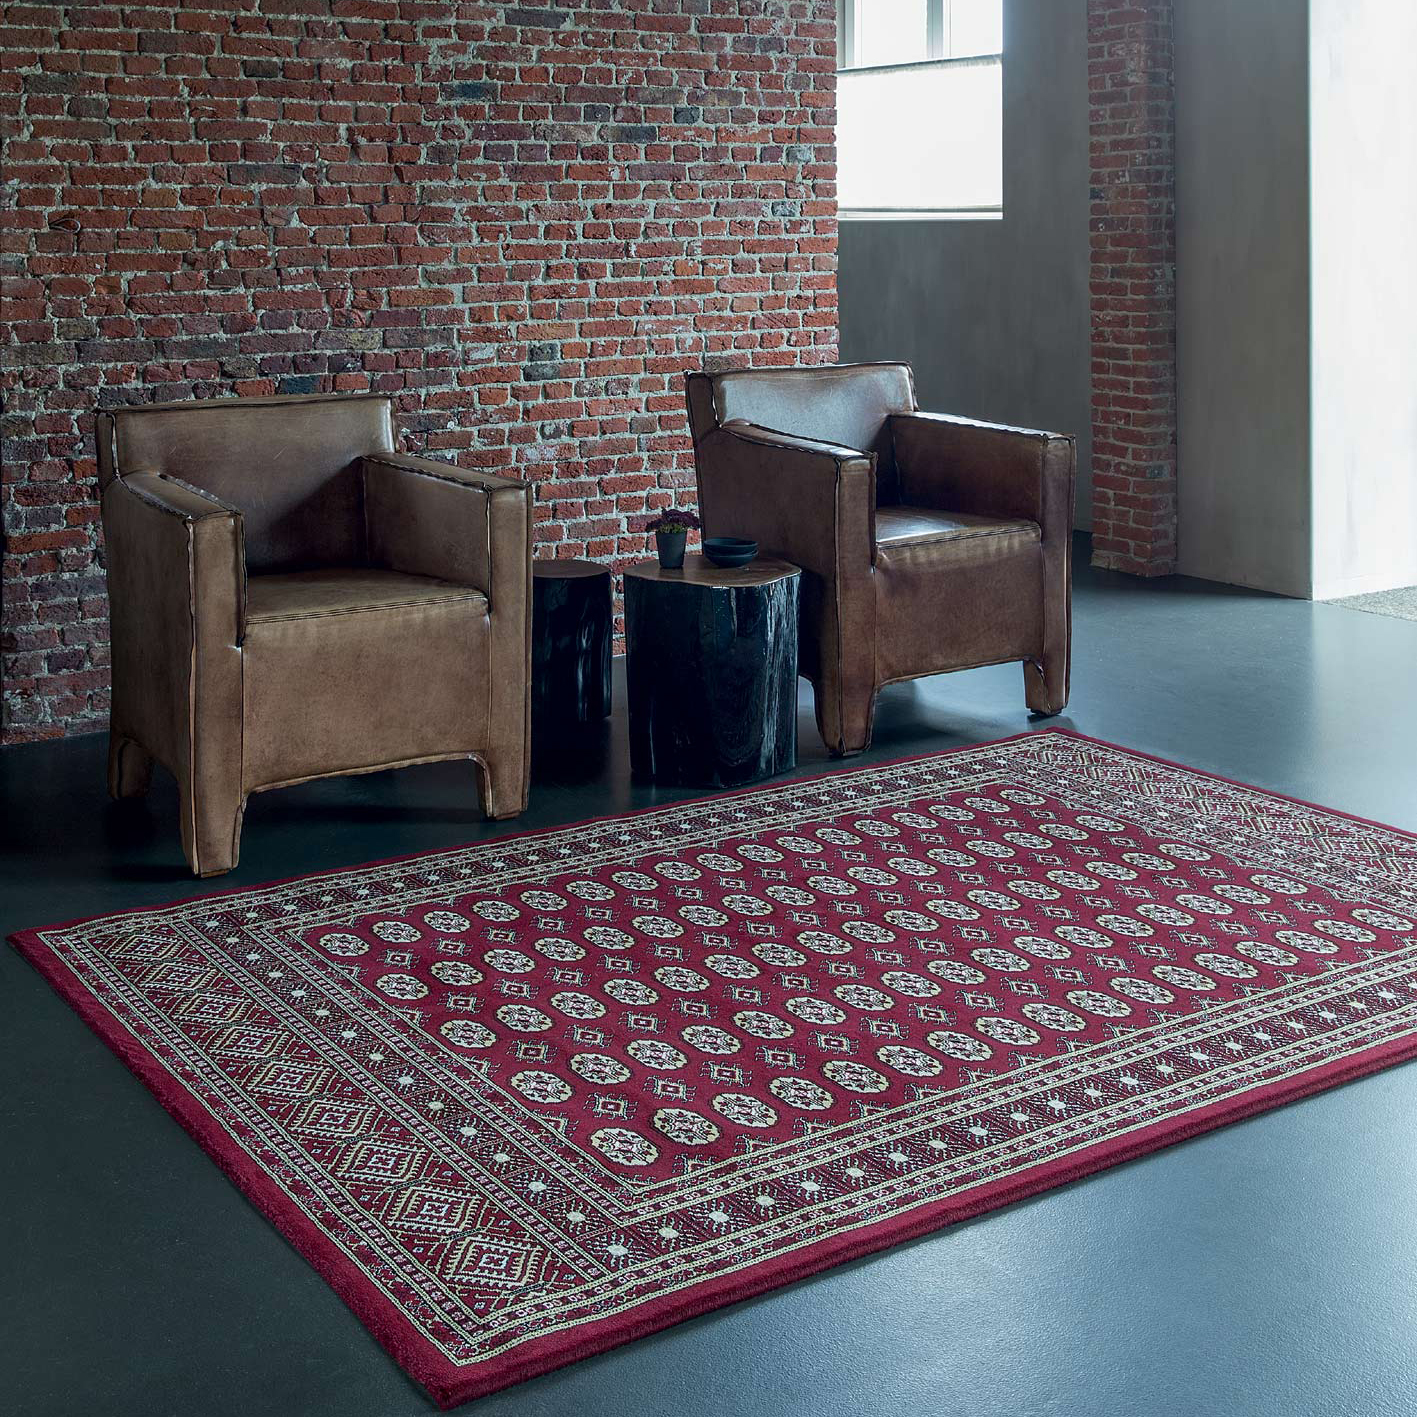 Noble Art Rugs 6585 393 in Red